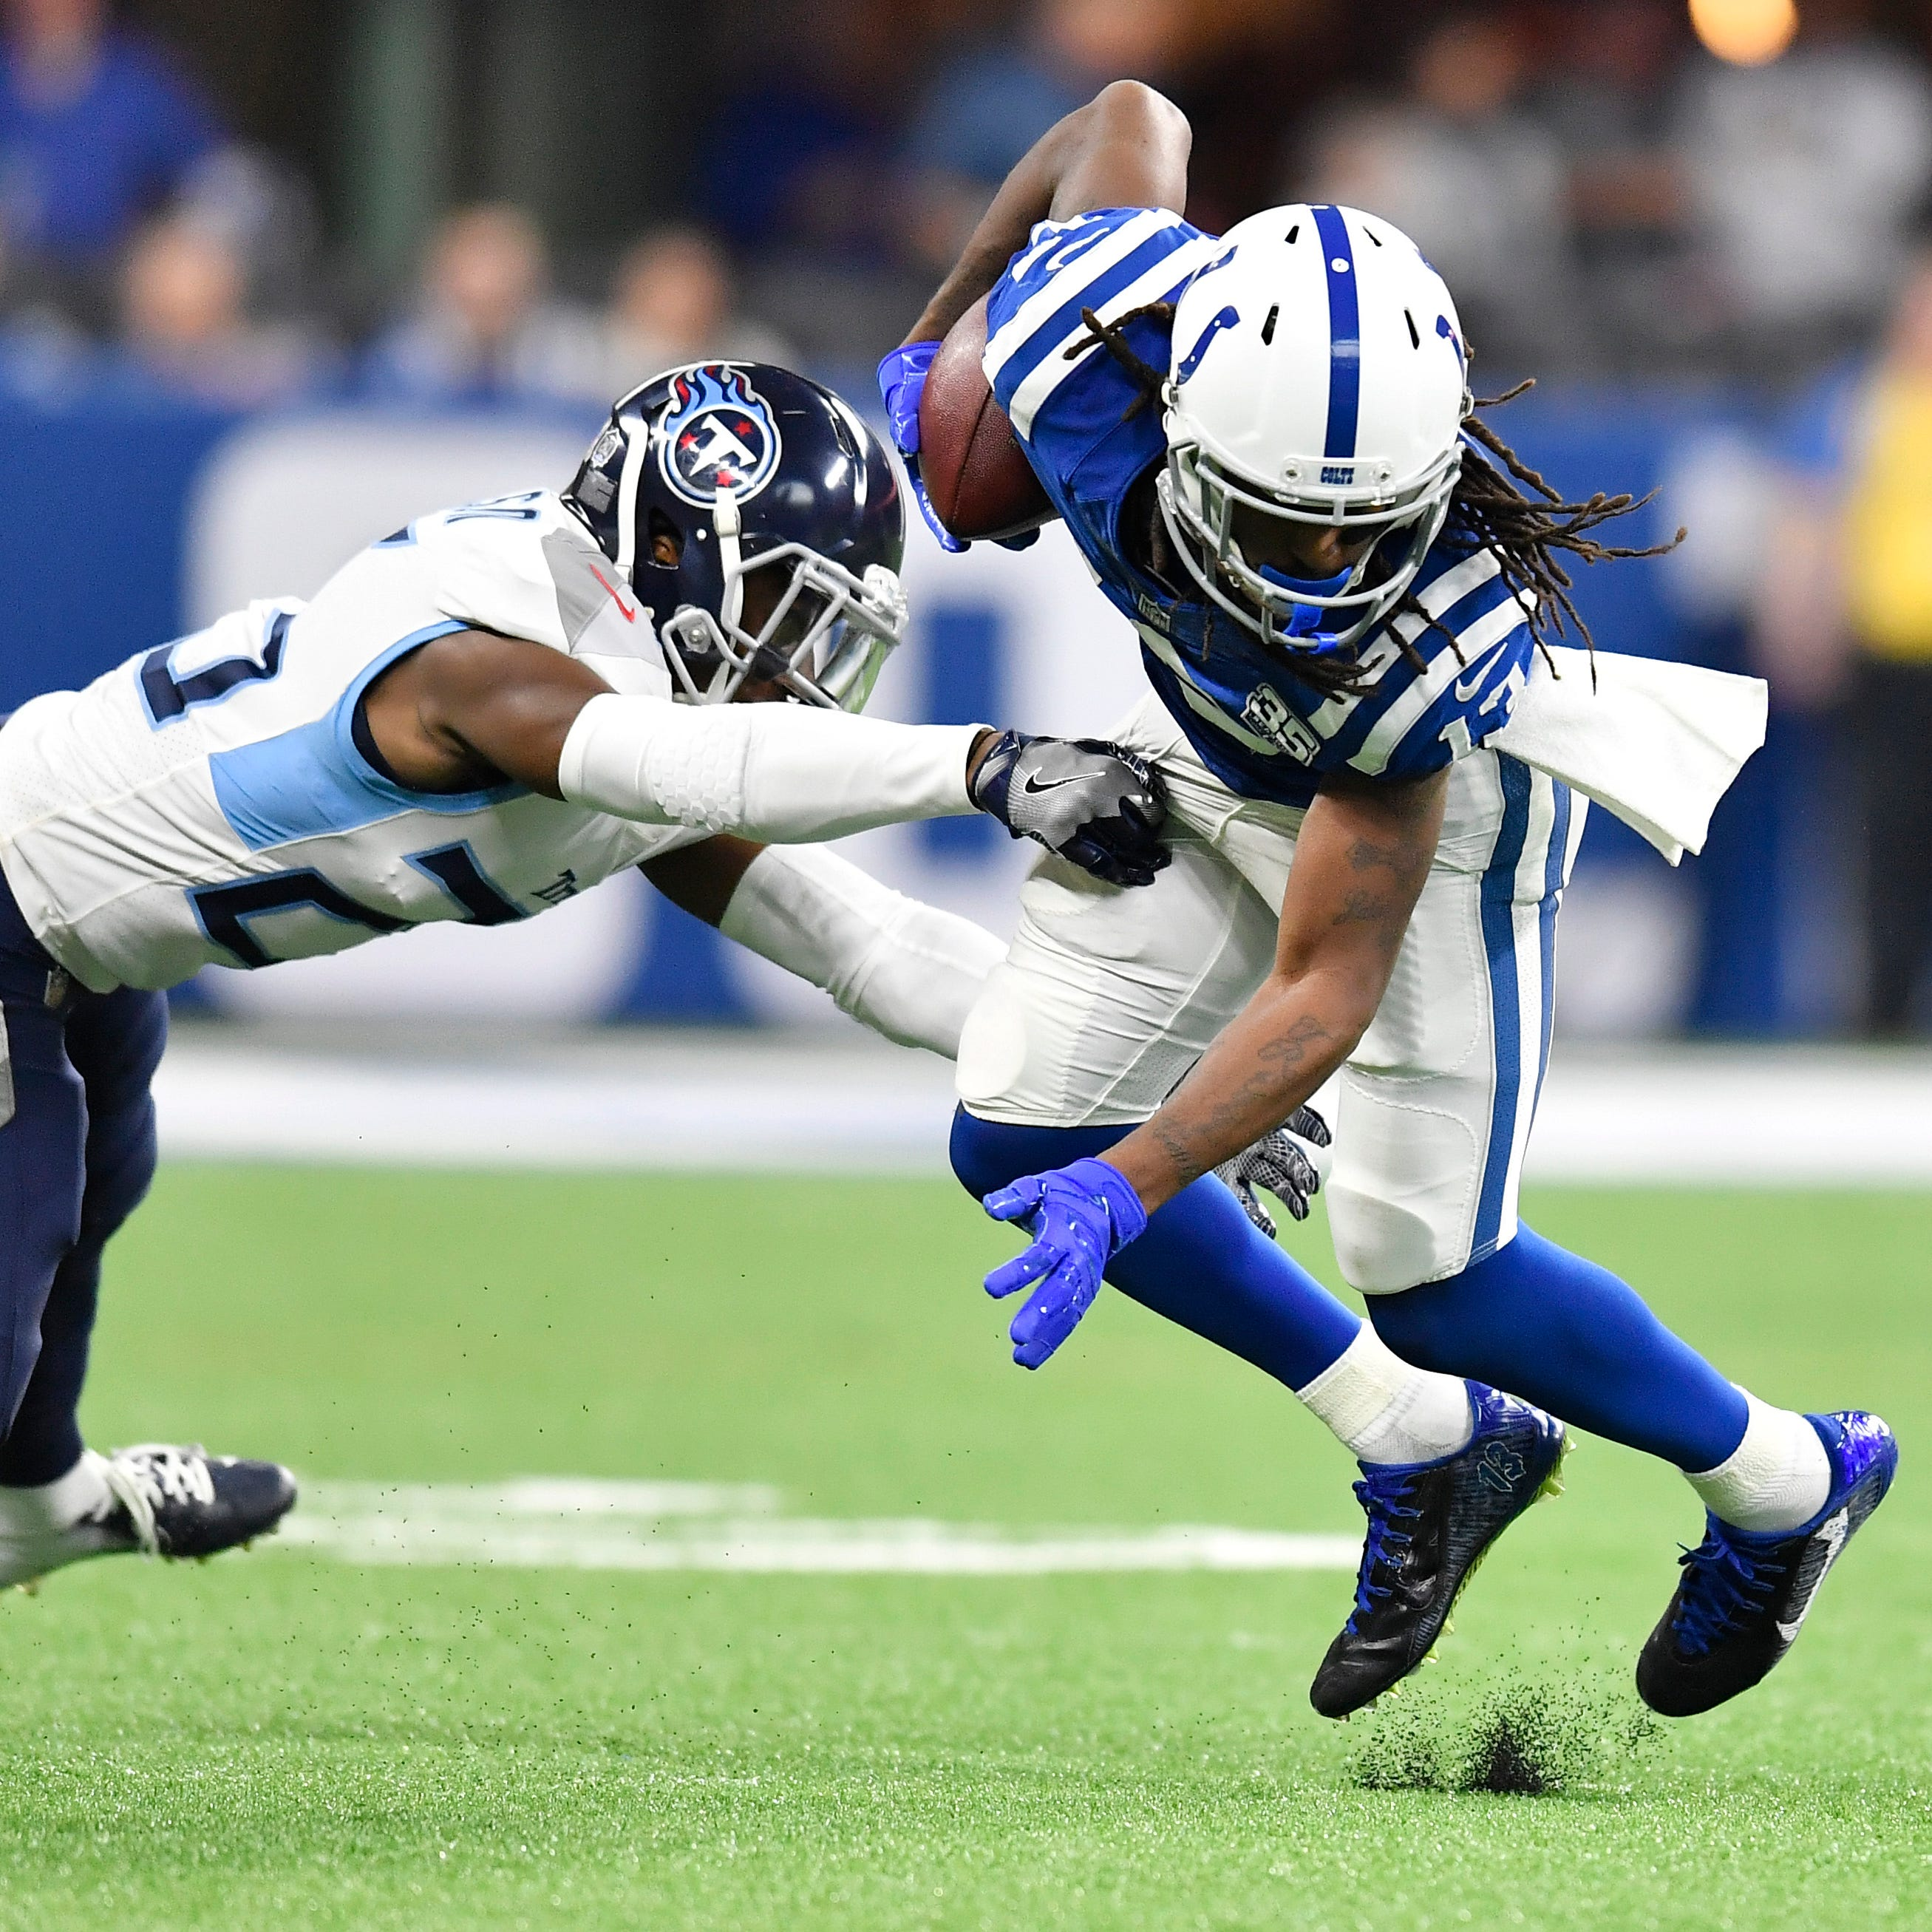 Colts 38, Titans 10: 60-second recap and you know it all